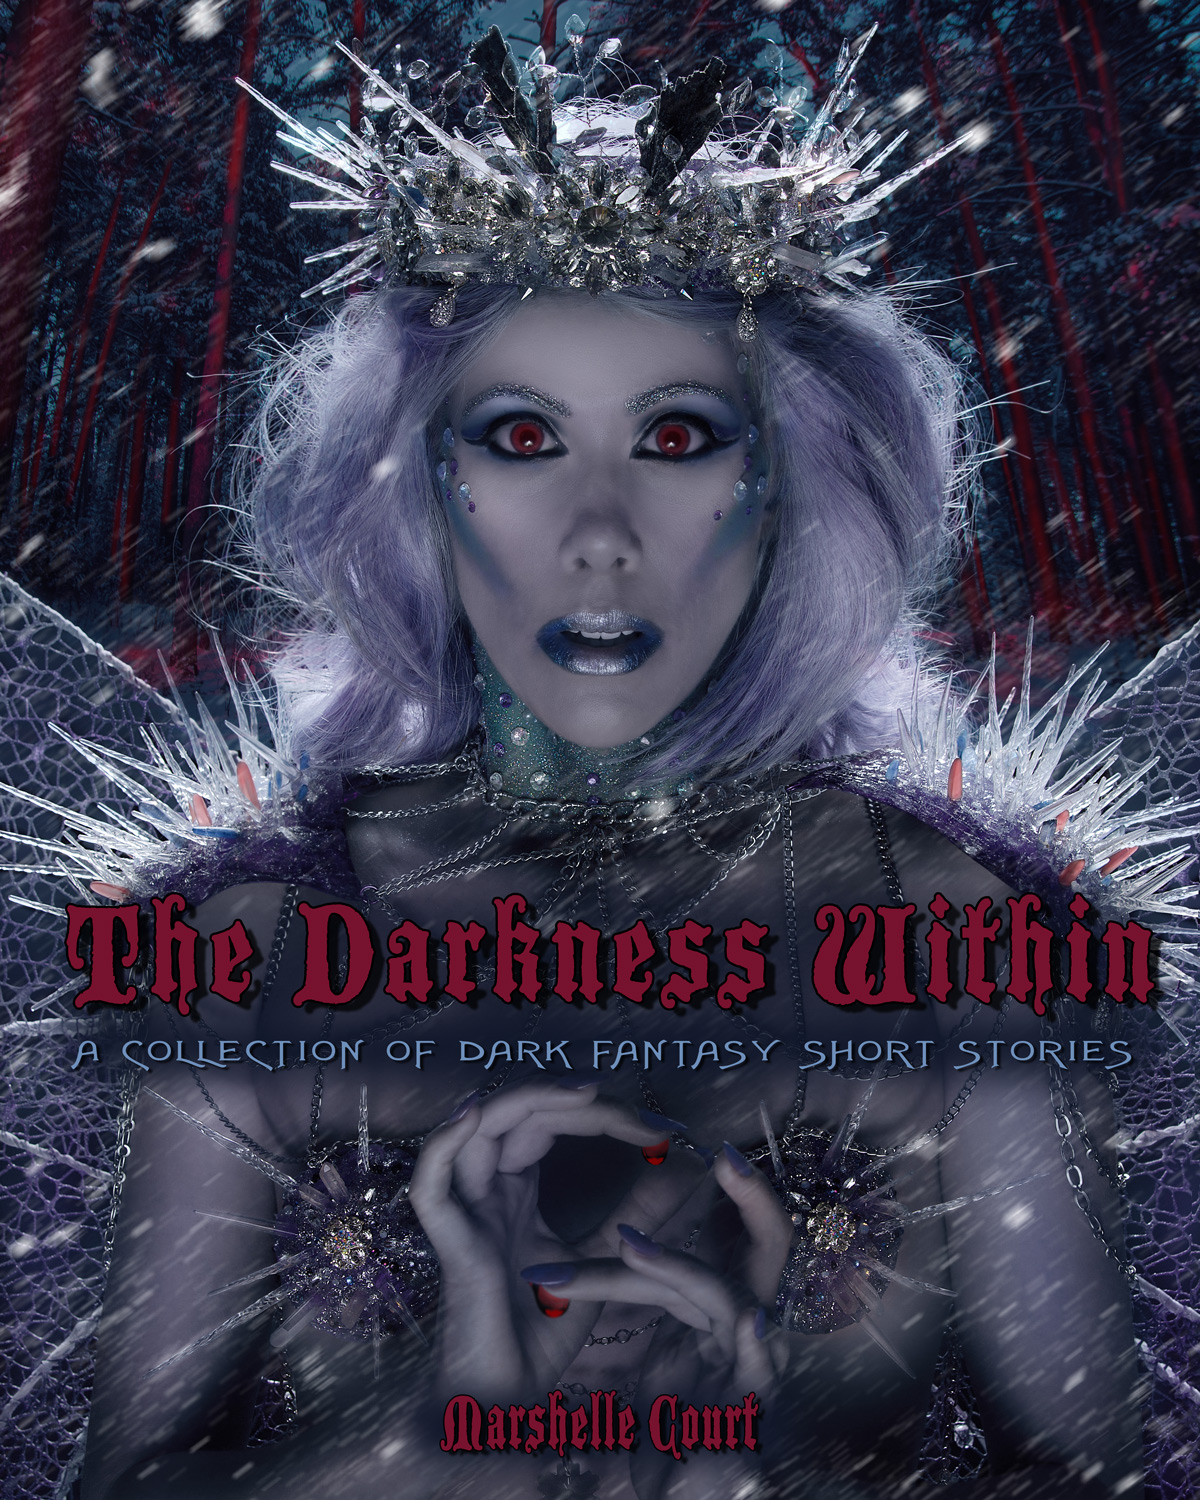 'The Darkness Within' book